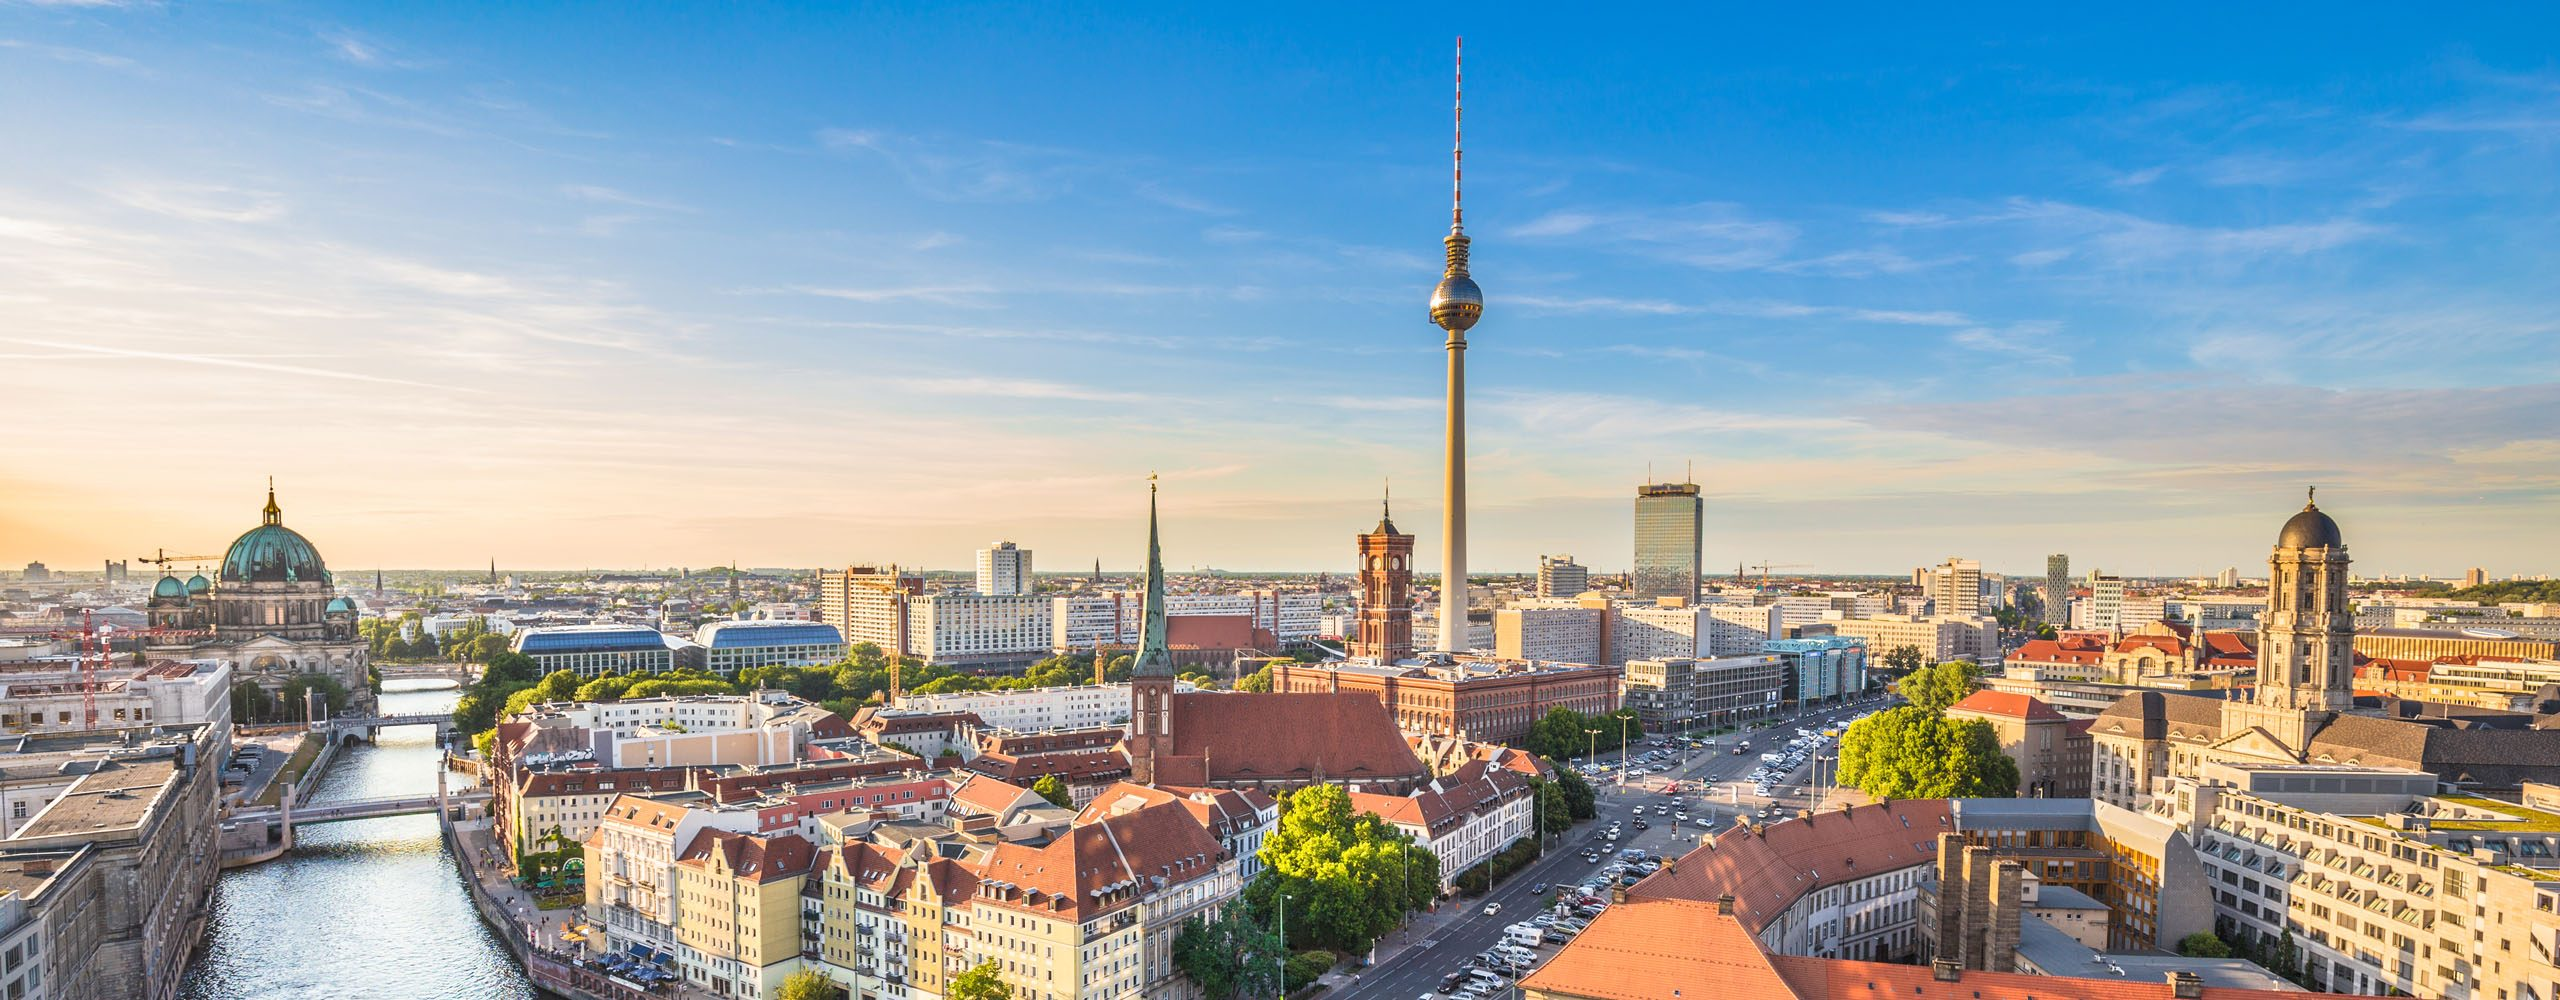 Last Mile Solutions opening new office in Berlin - Last Mile Solutions